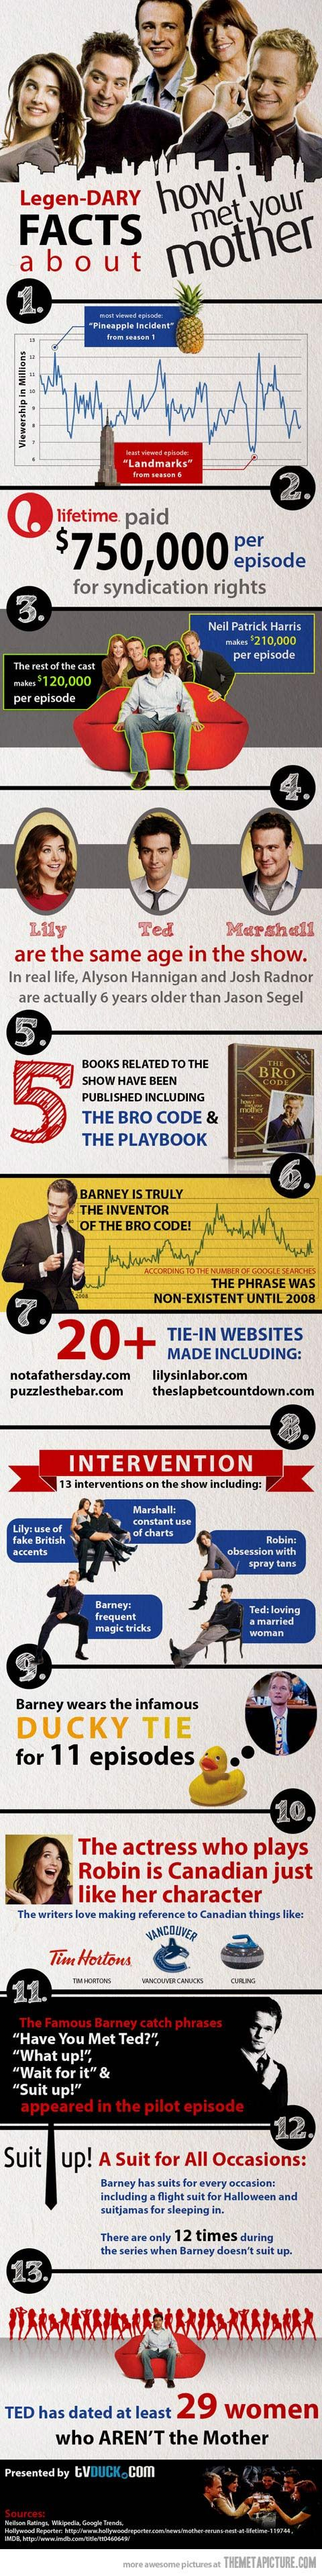 Legendary facts about how I met your mother...genius!